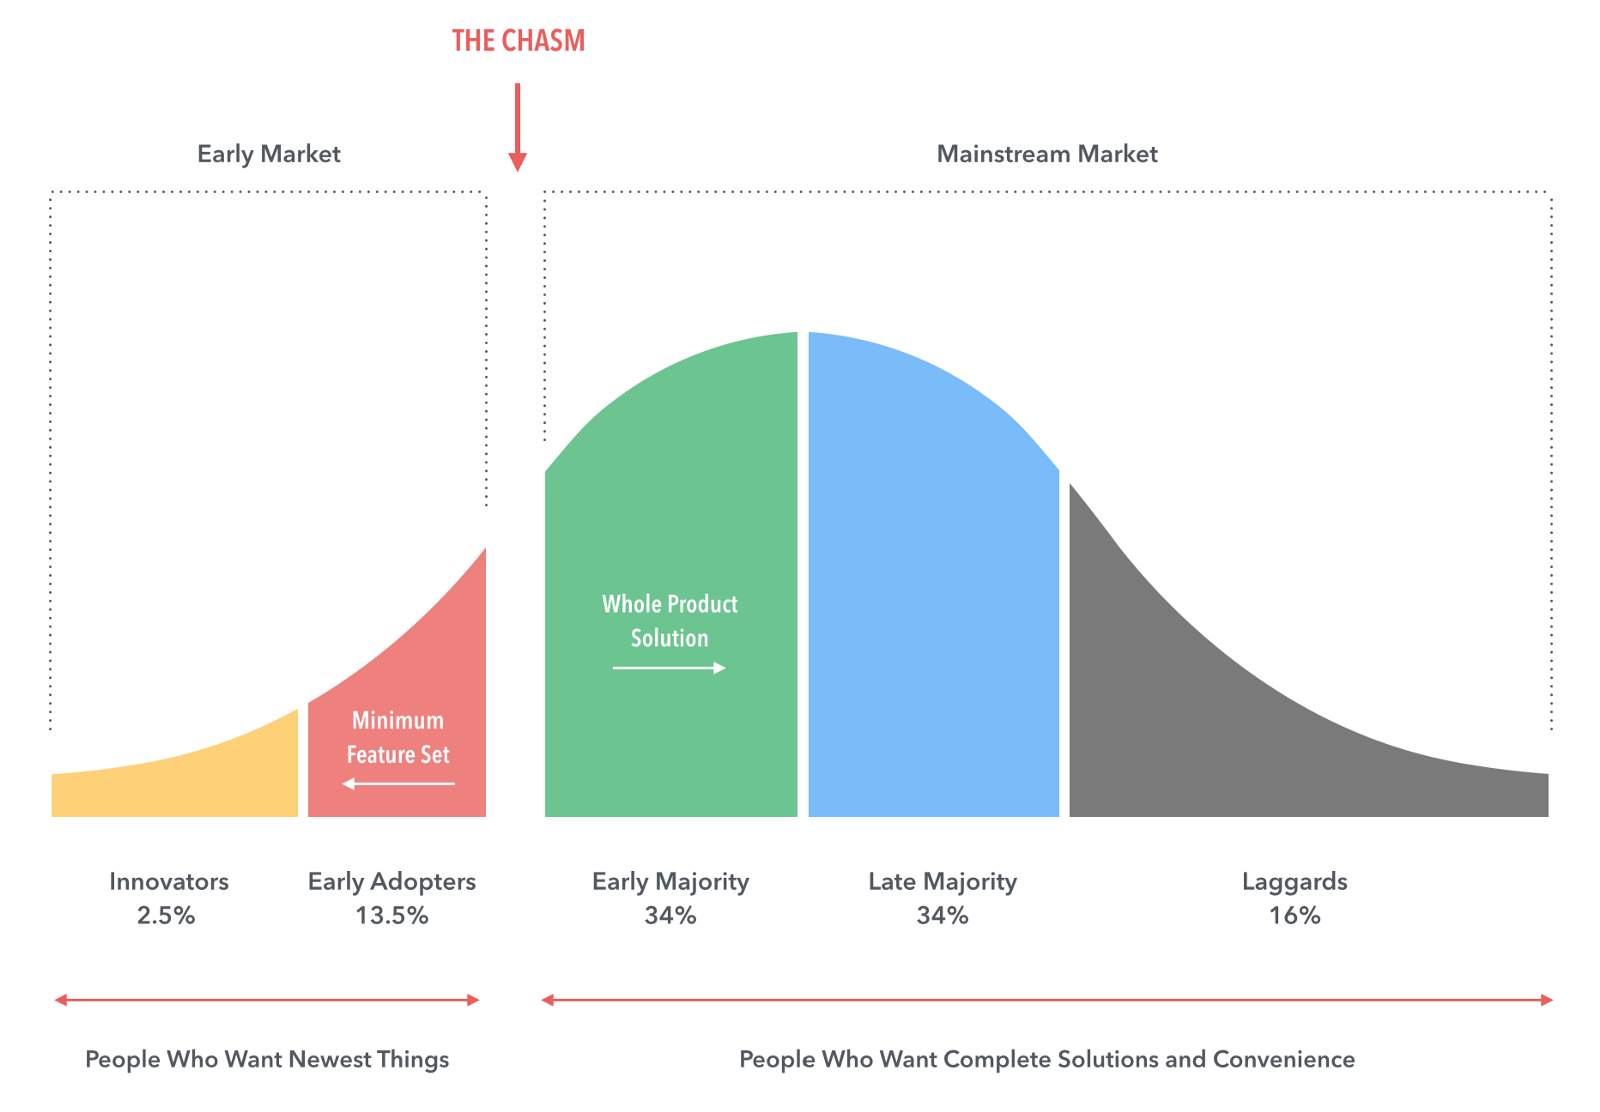 Lean canvas early adopters - crossing the chasm